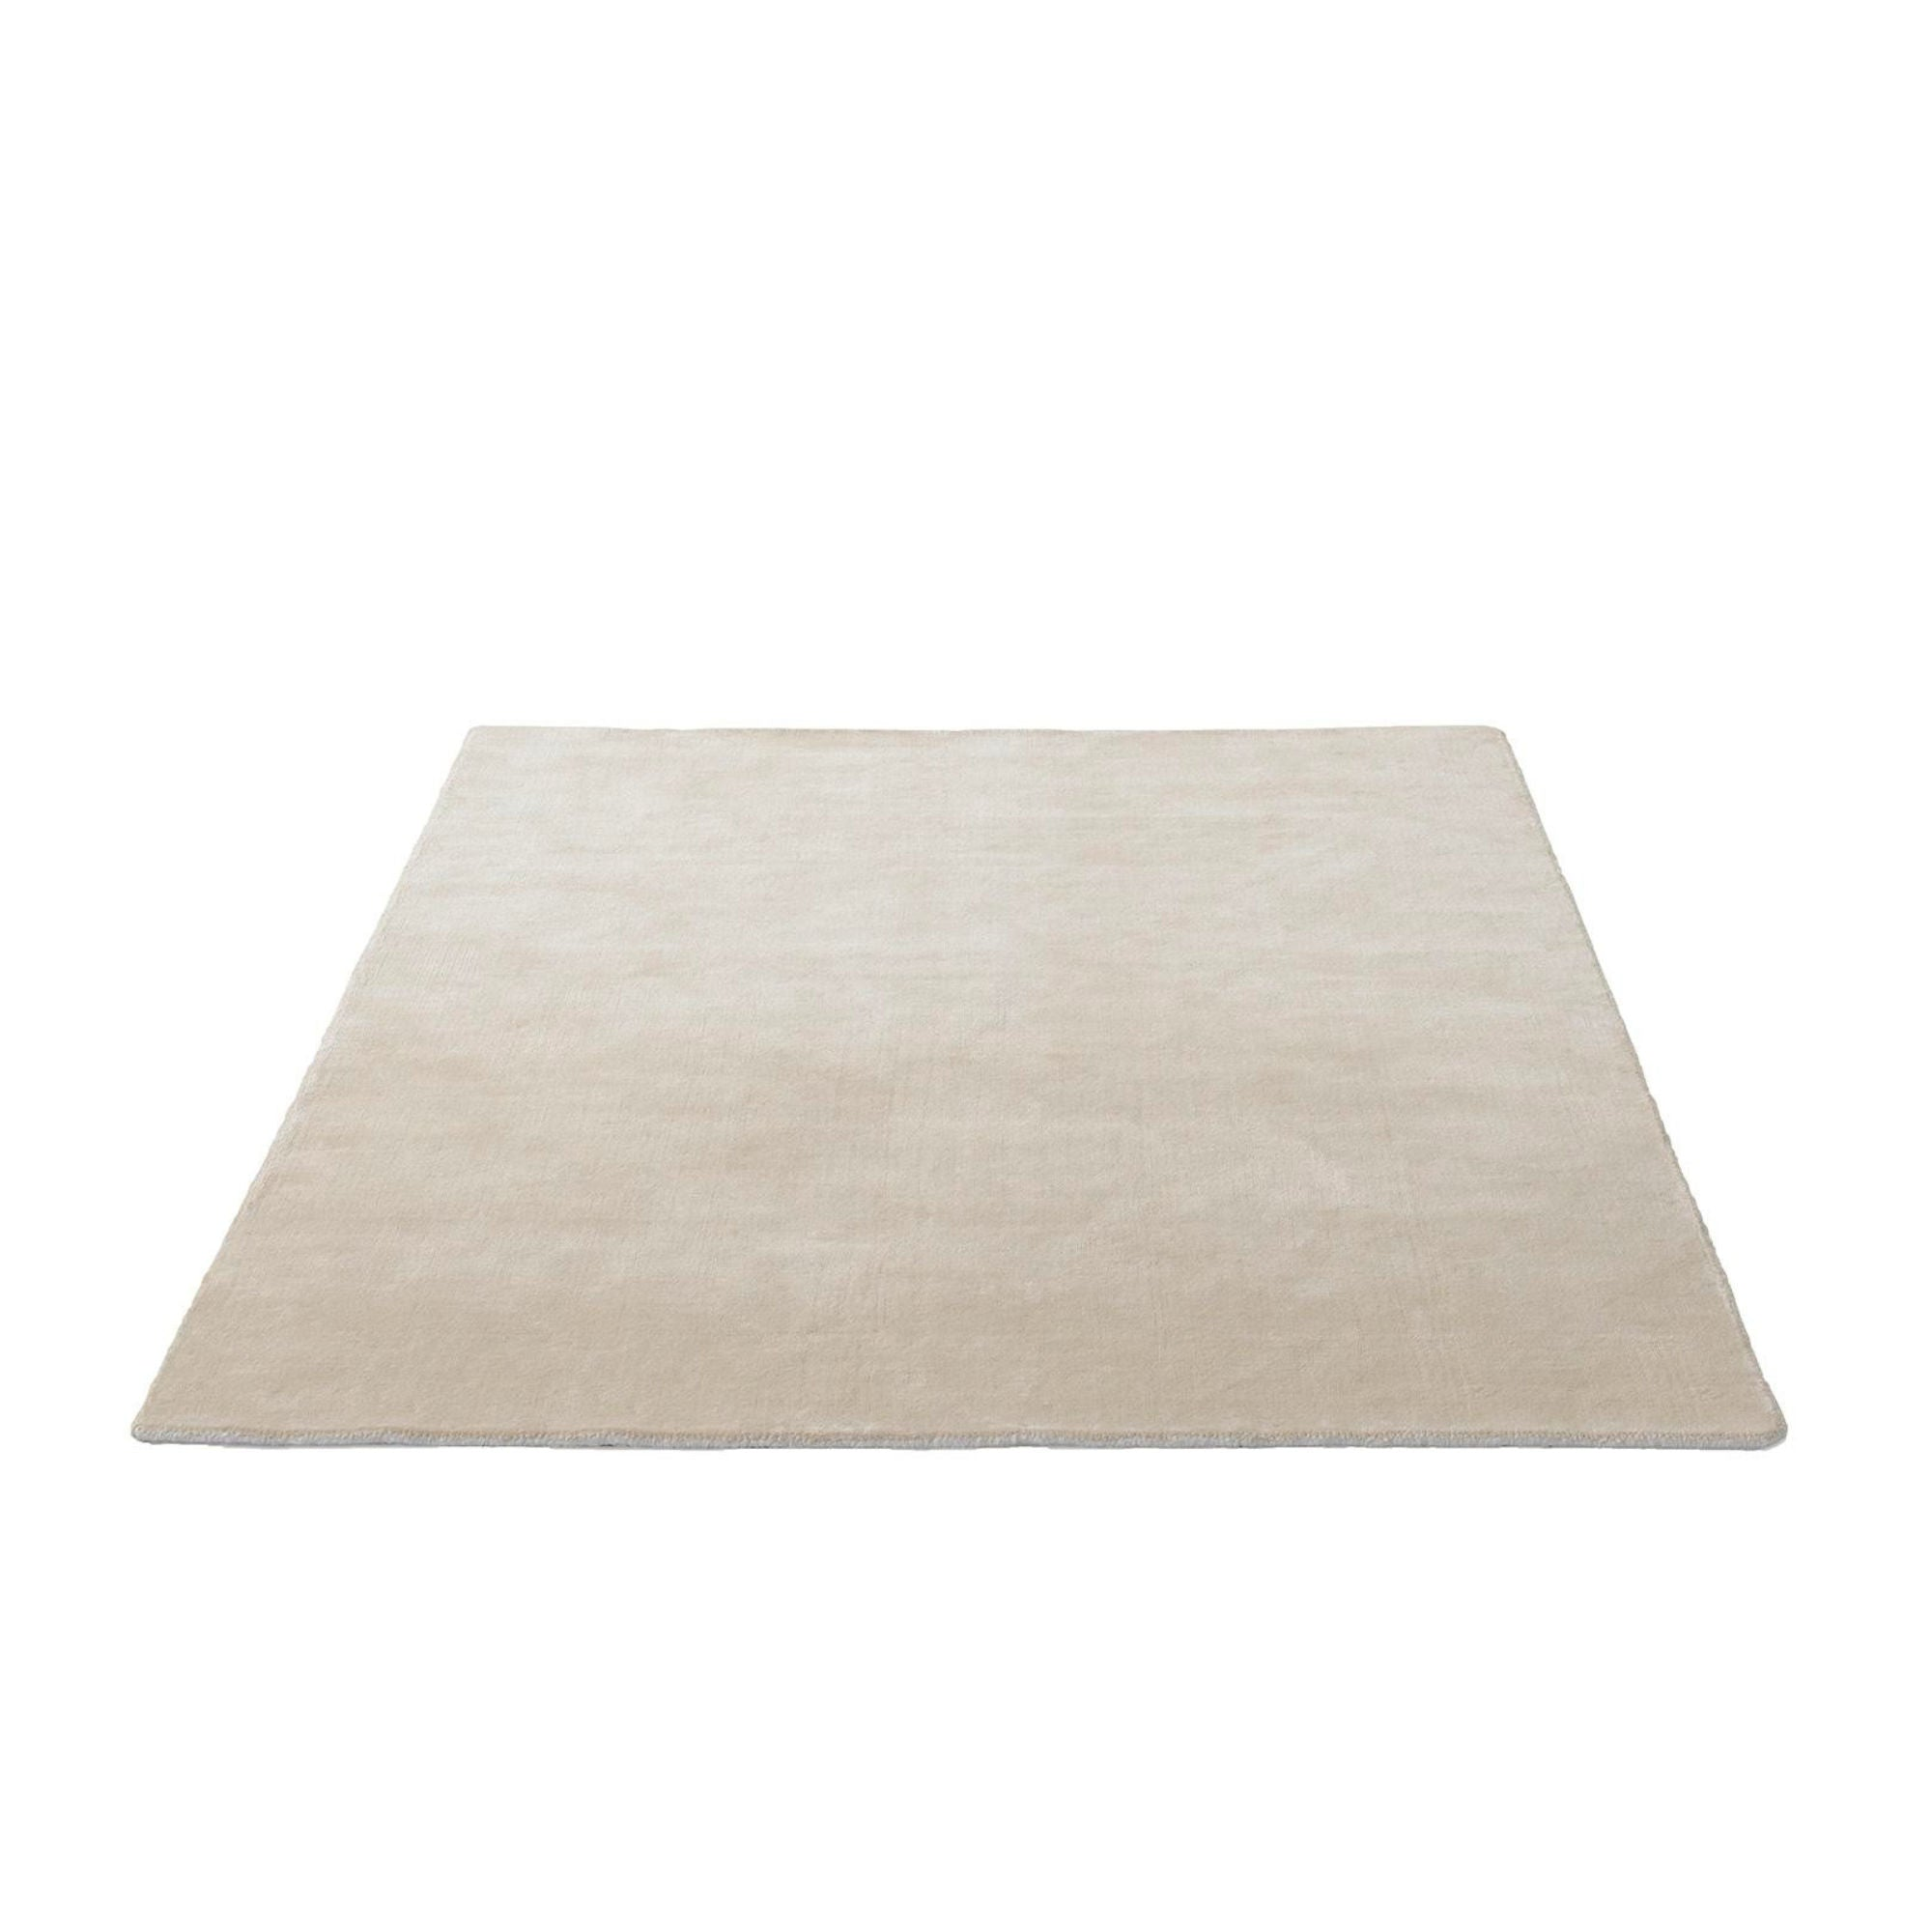 &Tradition AP5 The Moor rug 170*240, beige dew